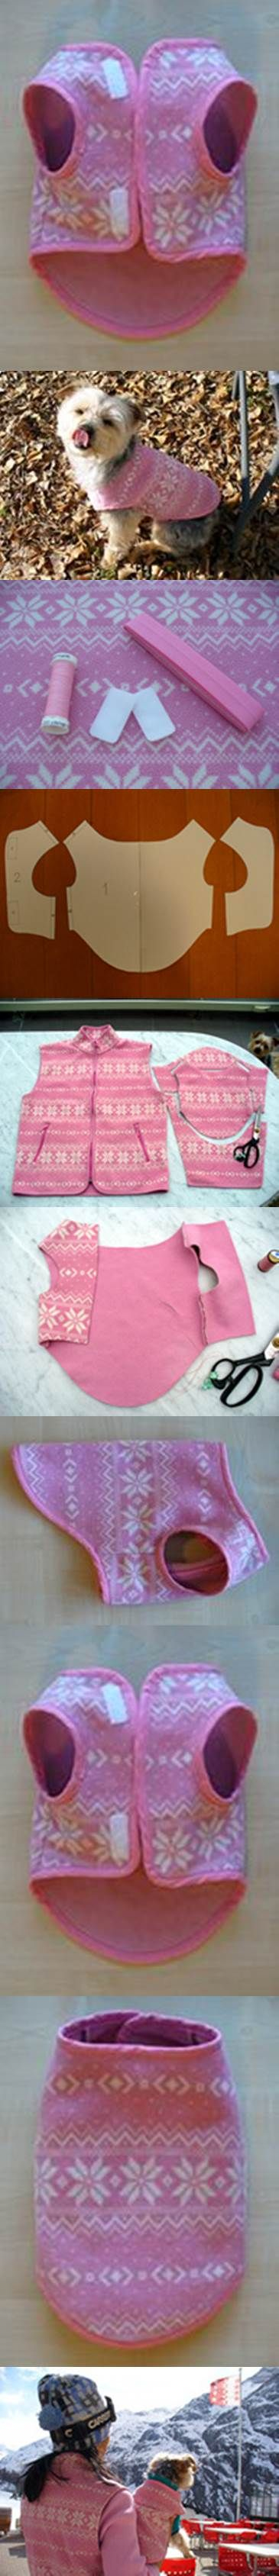 DIY Easy Dog Fleece Jacket 2